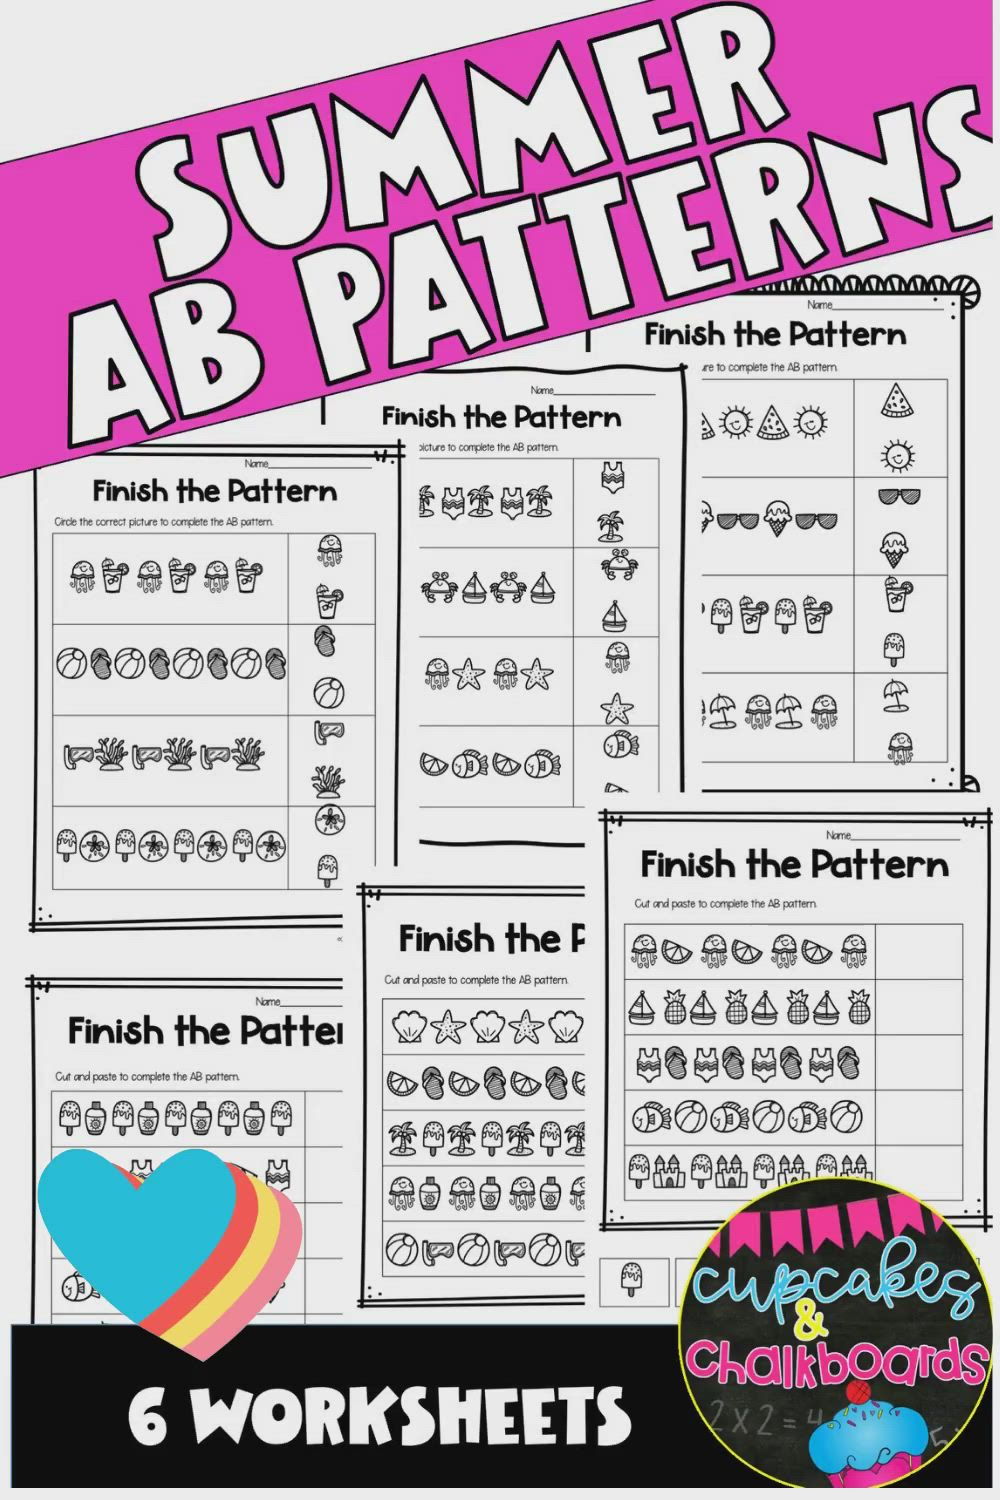 Summer Ab Patterns Worksheets Video In 2020 Ab Pattern Worksheet Ab Patterns Pattern Worksheet